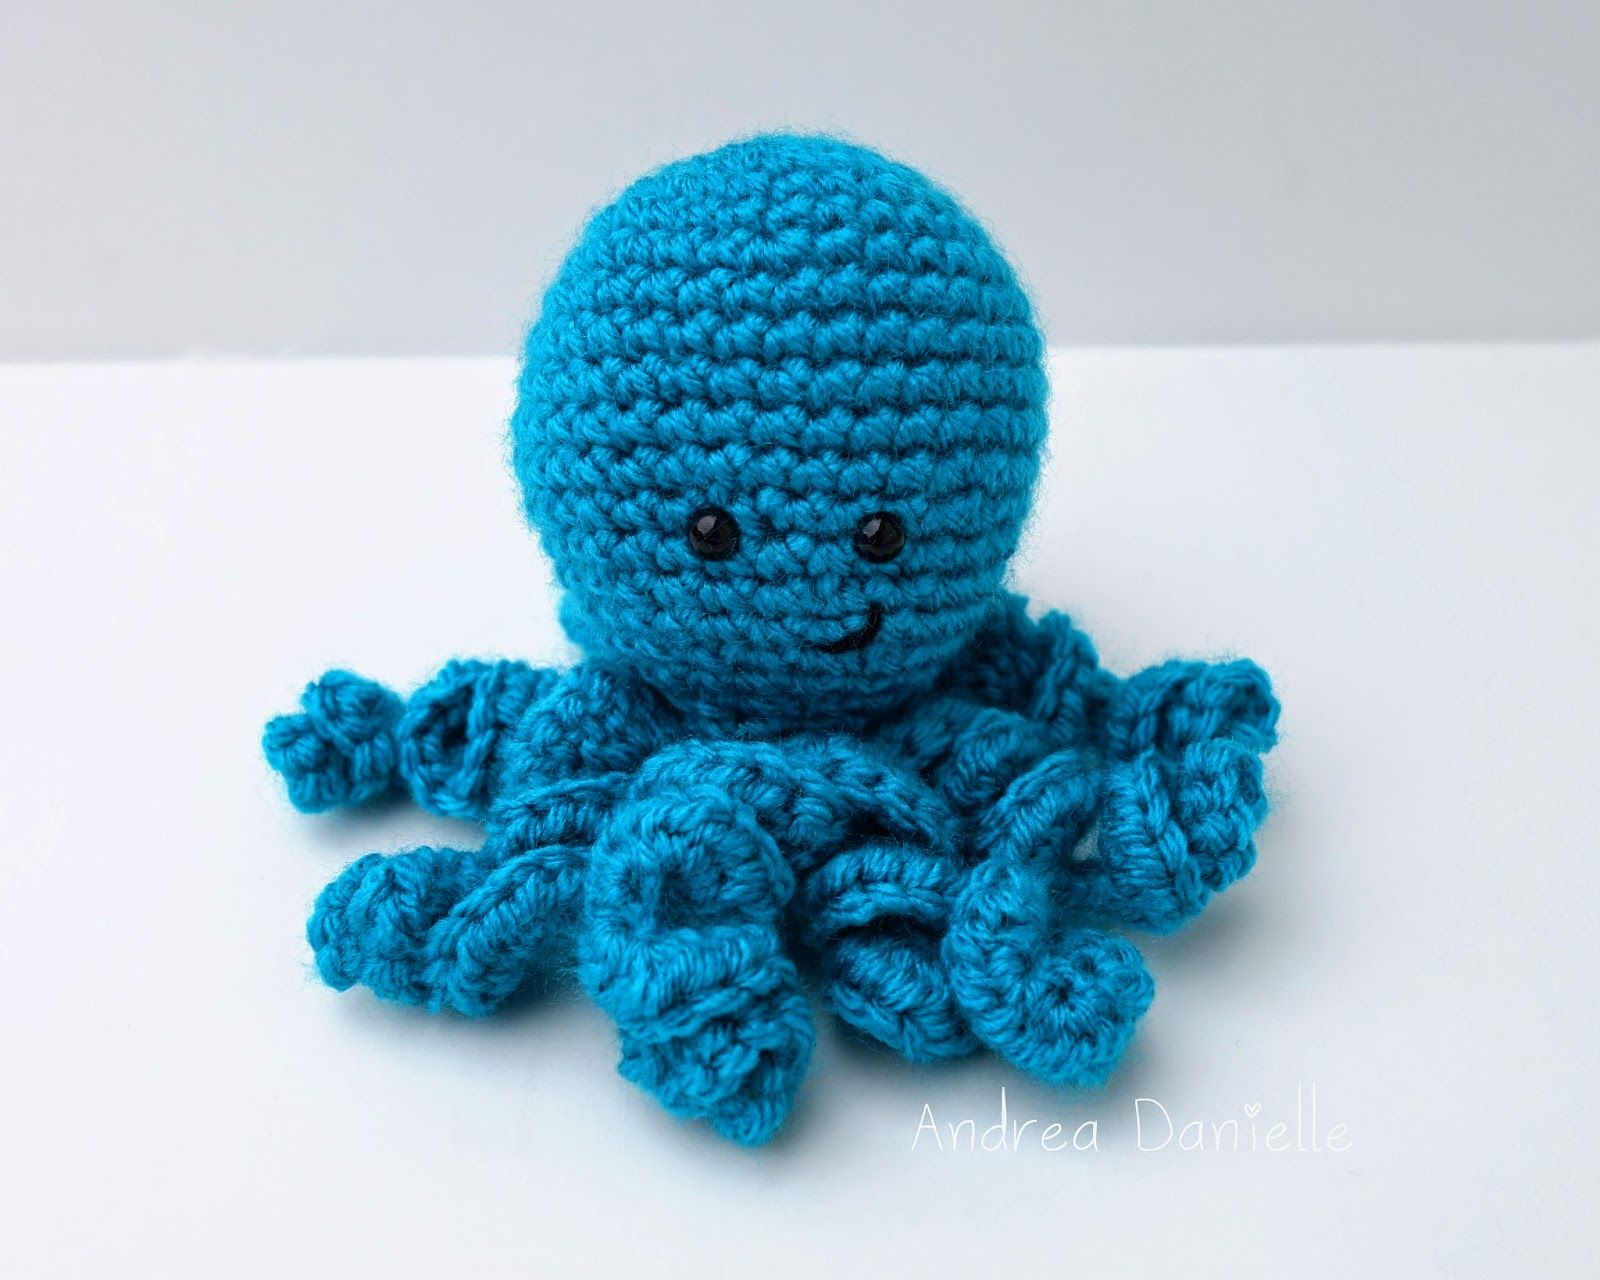 Knitting Pattern Octopus Toy : What a cute little amigurumi octopus from You Never Know ...